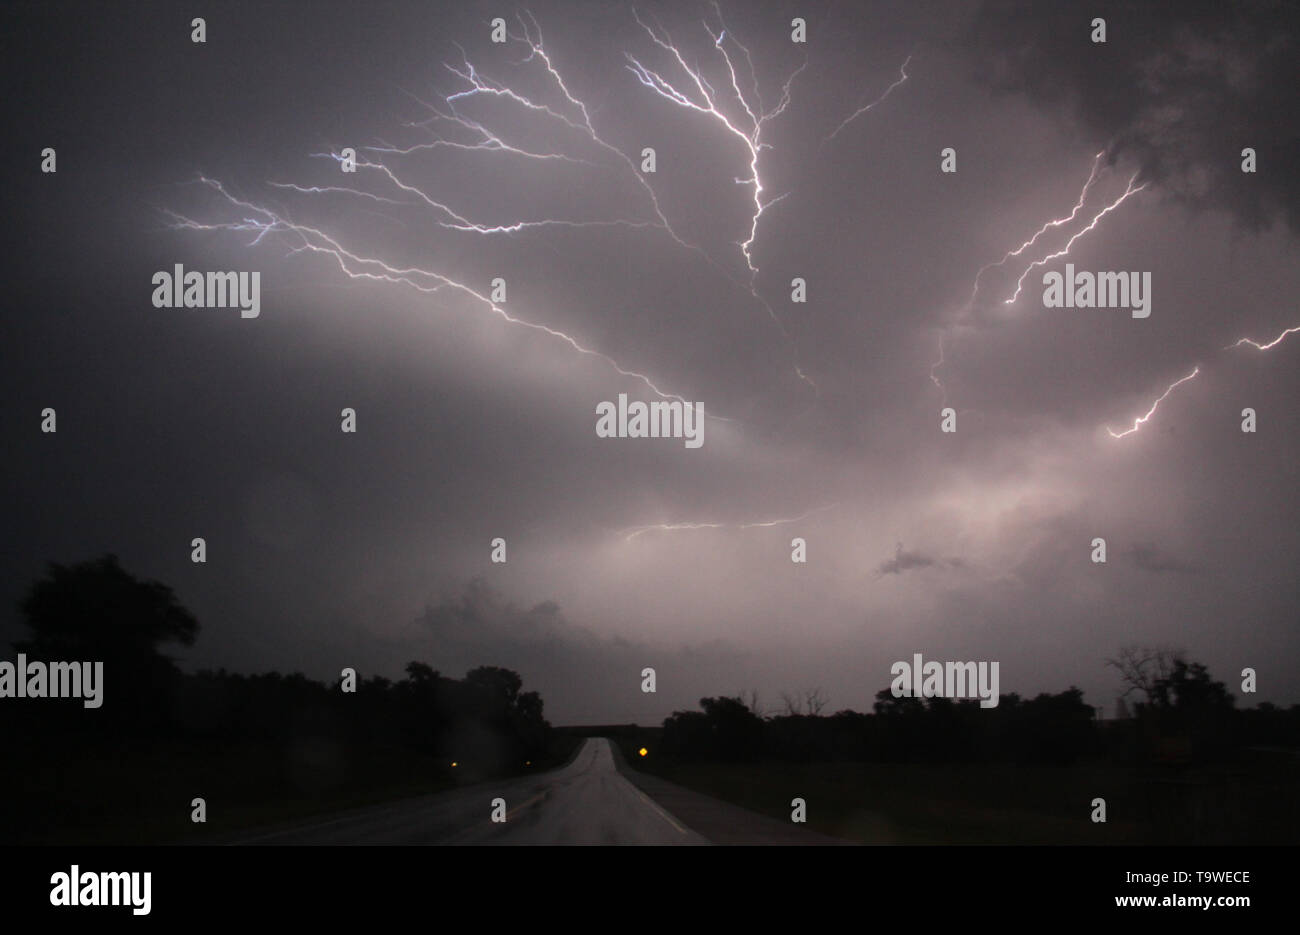 Lightning strikes at night from huge squall line covering 6 states areas in the Oklahoma City as flooding rain and severe storms, including tornadoes, are predicted in the Southern Plains through late Monday May 20, 2019. Tornado watches in effect in the Texas Panhandle and Oklahoma expire before midnight. Then, flooding is expected to become the major concern overnight from Oklahoma City to Tulsa and to the northeast. The tornado outbreak has not been as severe as feared as twisters have mostly avoided population centers. Photo by Gene Blevins/ZumaPress (Credit Image: © Gene Blevins/ - Stock Image